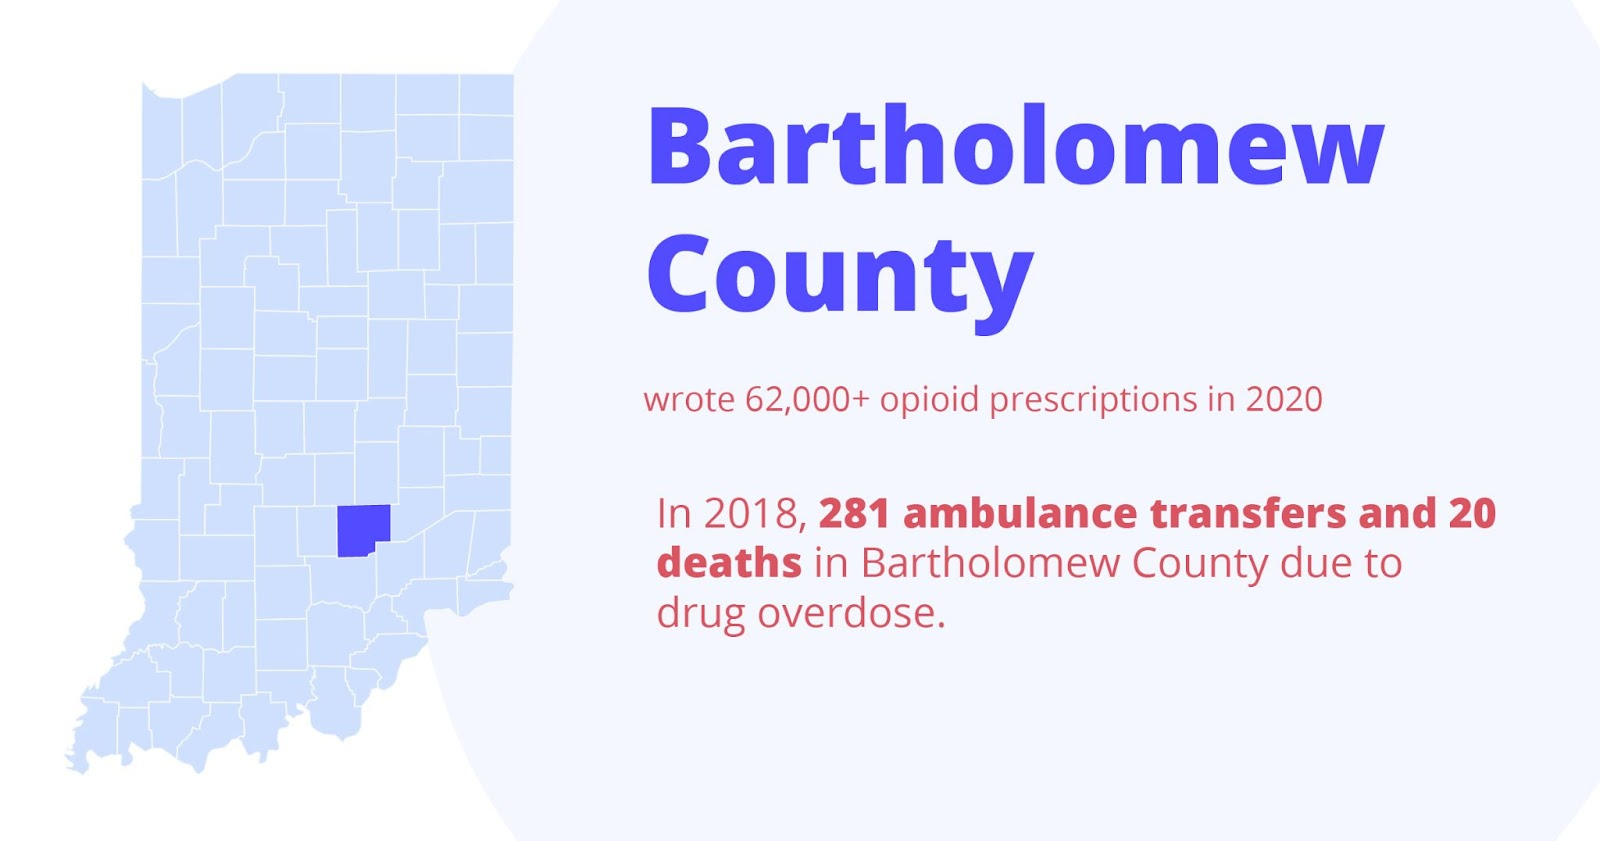 Bartholomex county wrote 62,000+ opioid prescriptions in 2020. in 2018, 281 ambulance transfers and 20 deaths in bartholomew county due to drug overdose